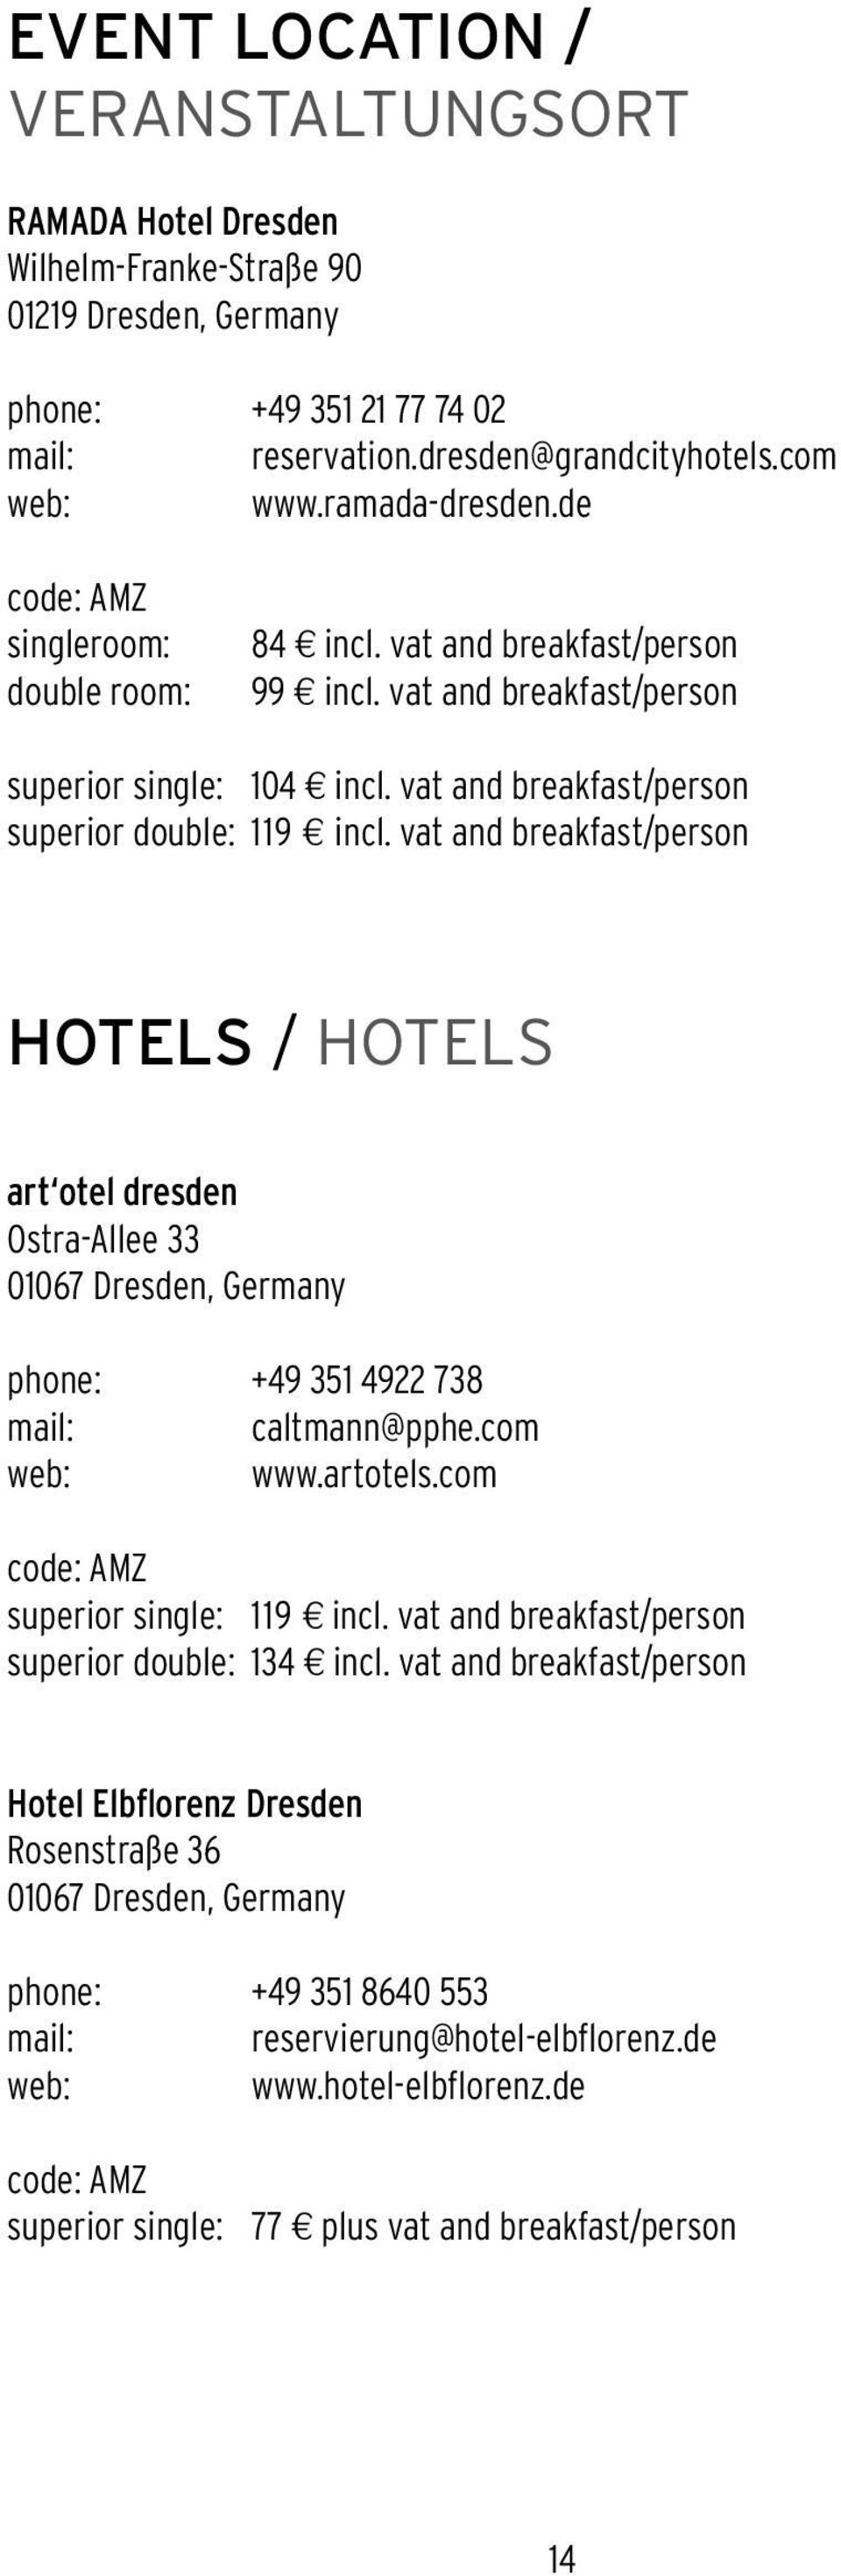 vat and breakfast/person Hotels / hotels art otel dresden Ostra-Allee 33 01067 Dresden, Germany phone: +49 351 4922 738 mail: caltmann@pphe.com web: www.artotels.